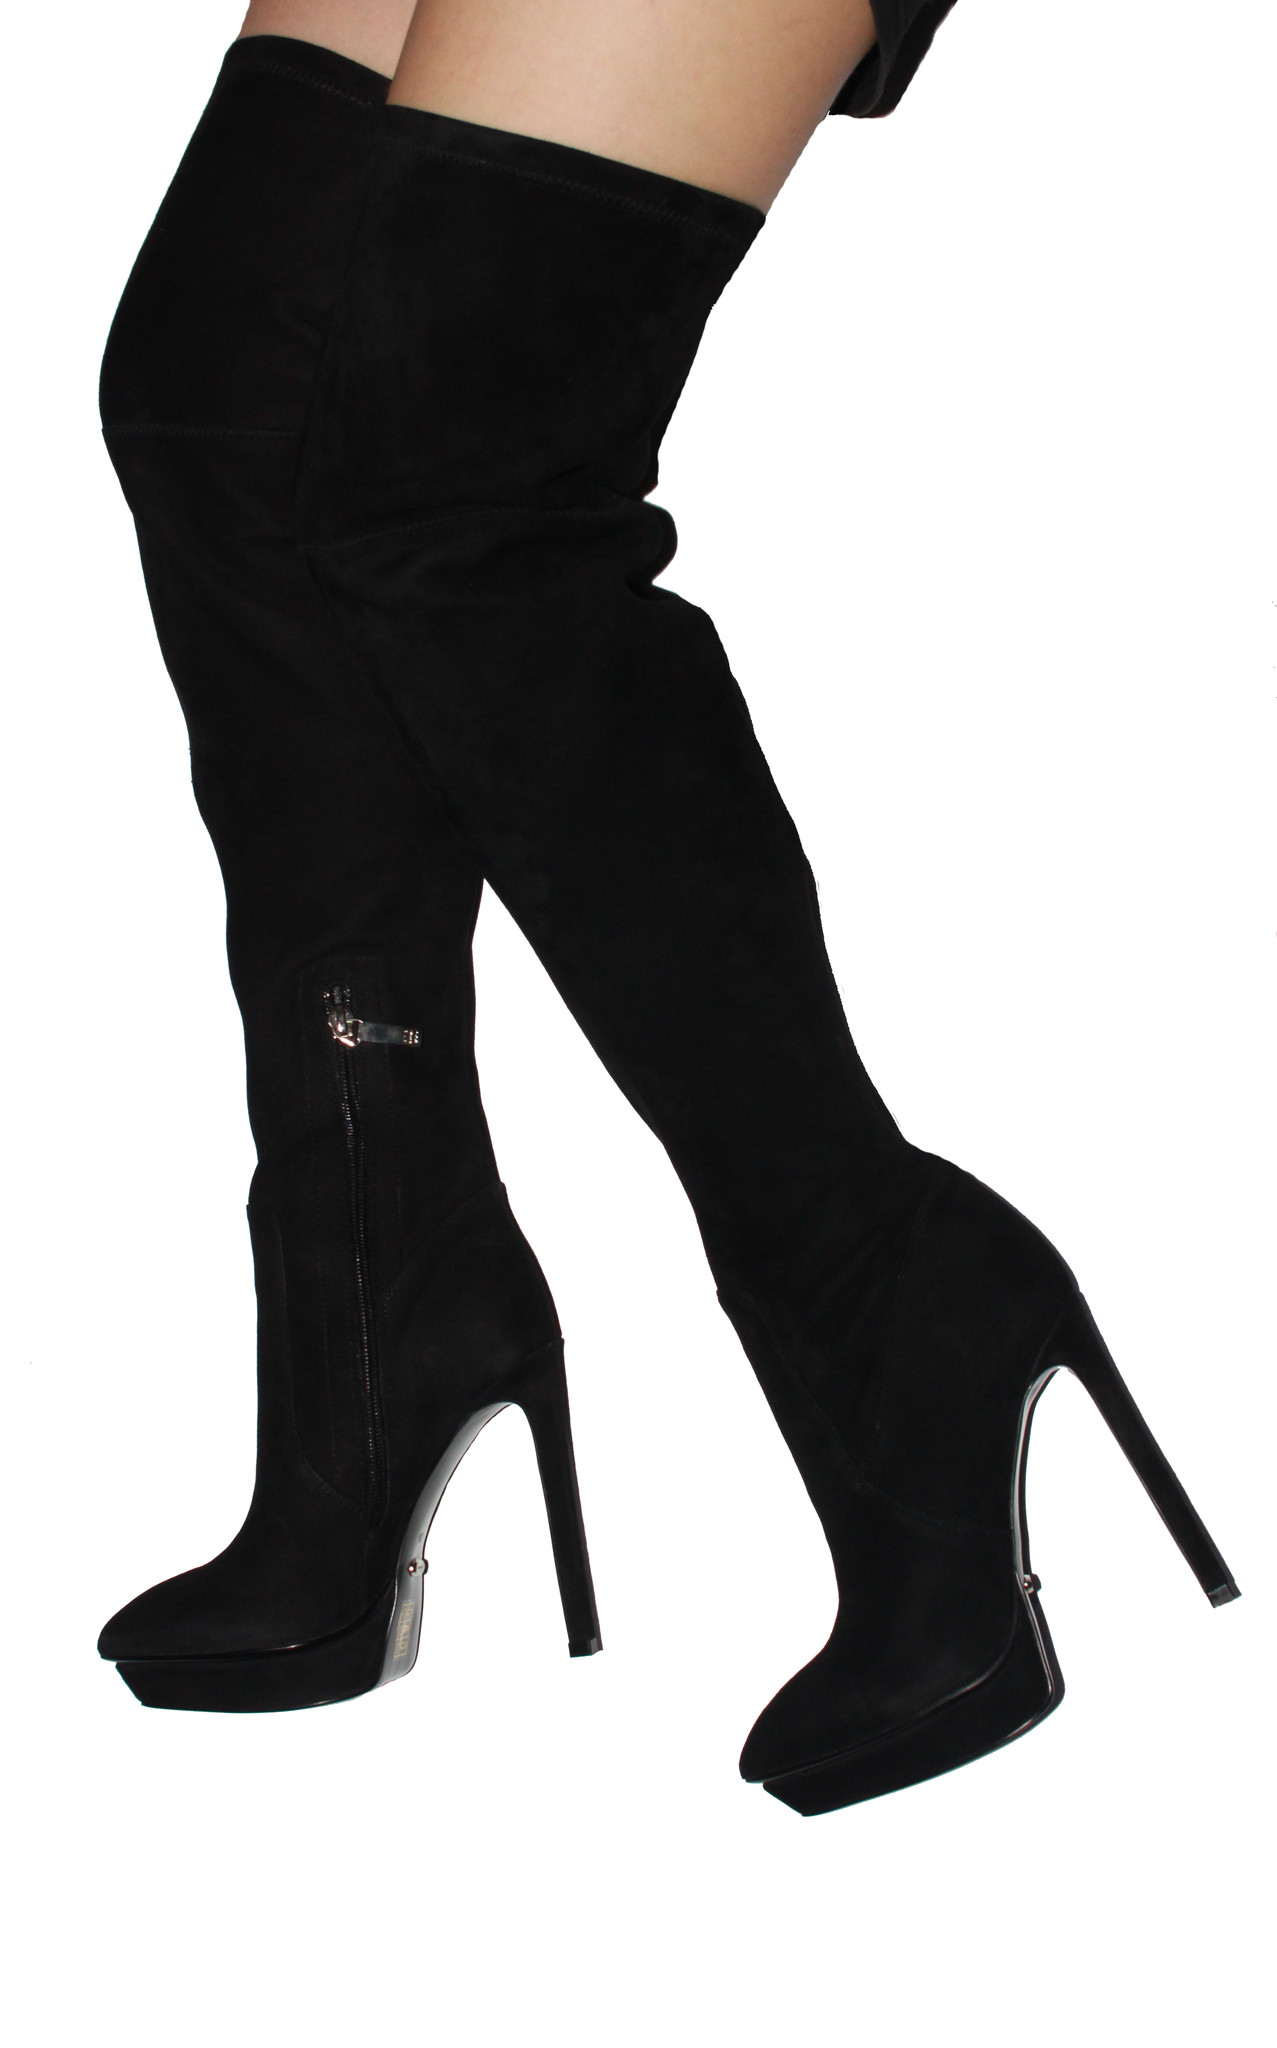 inch Heels - Black suede over the knee high heel boots